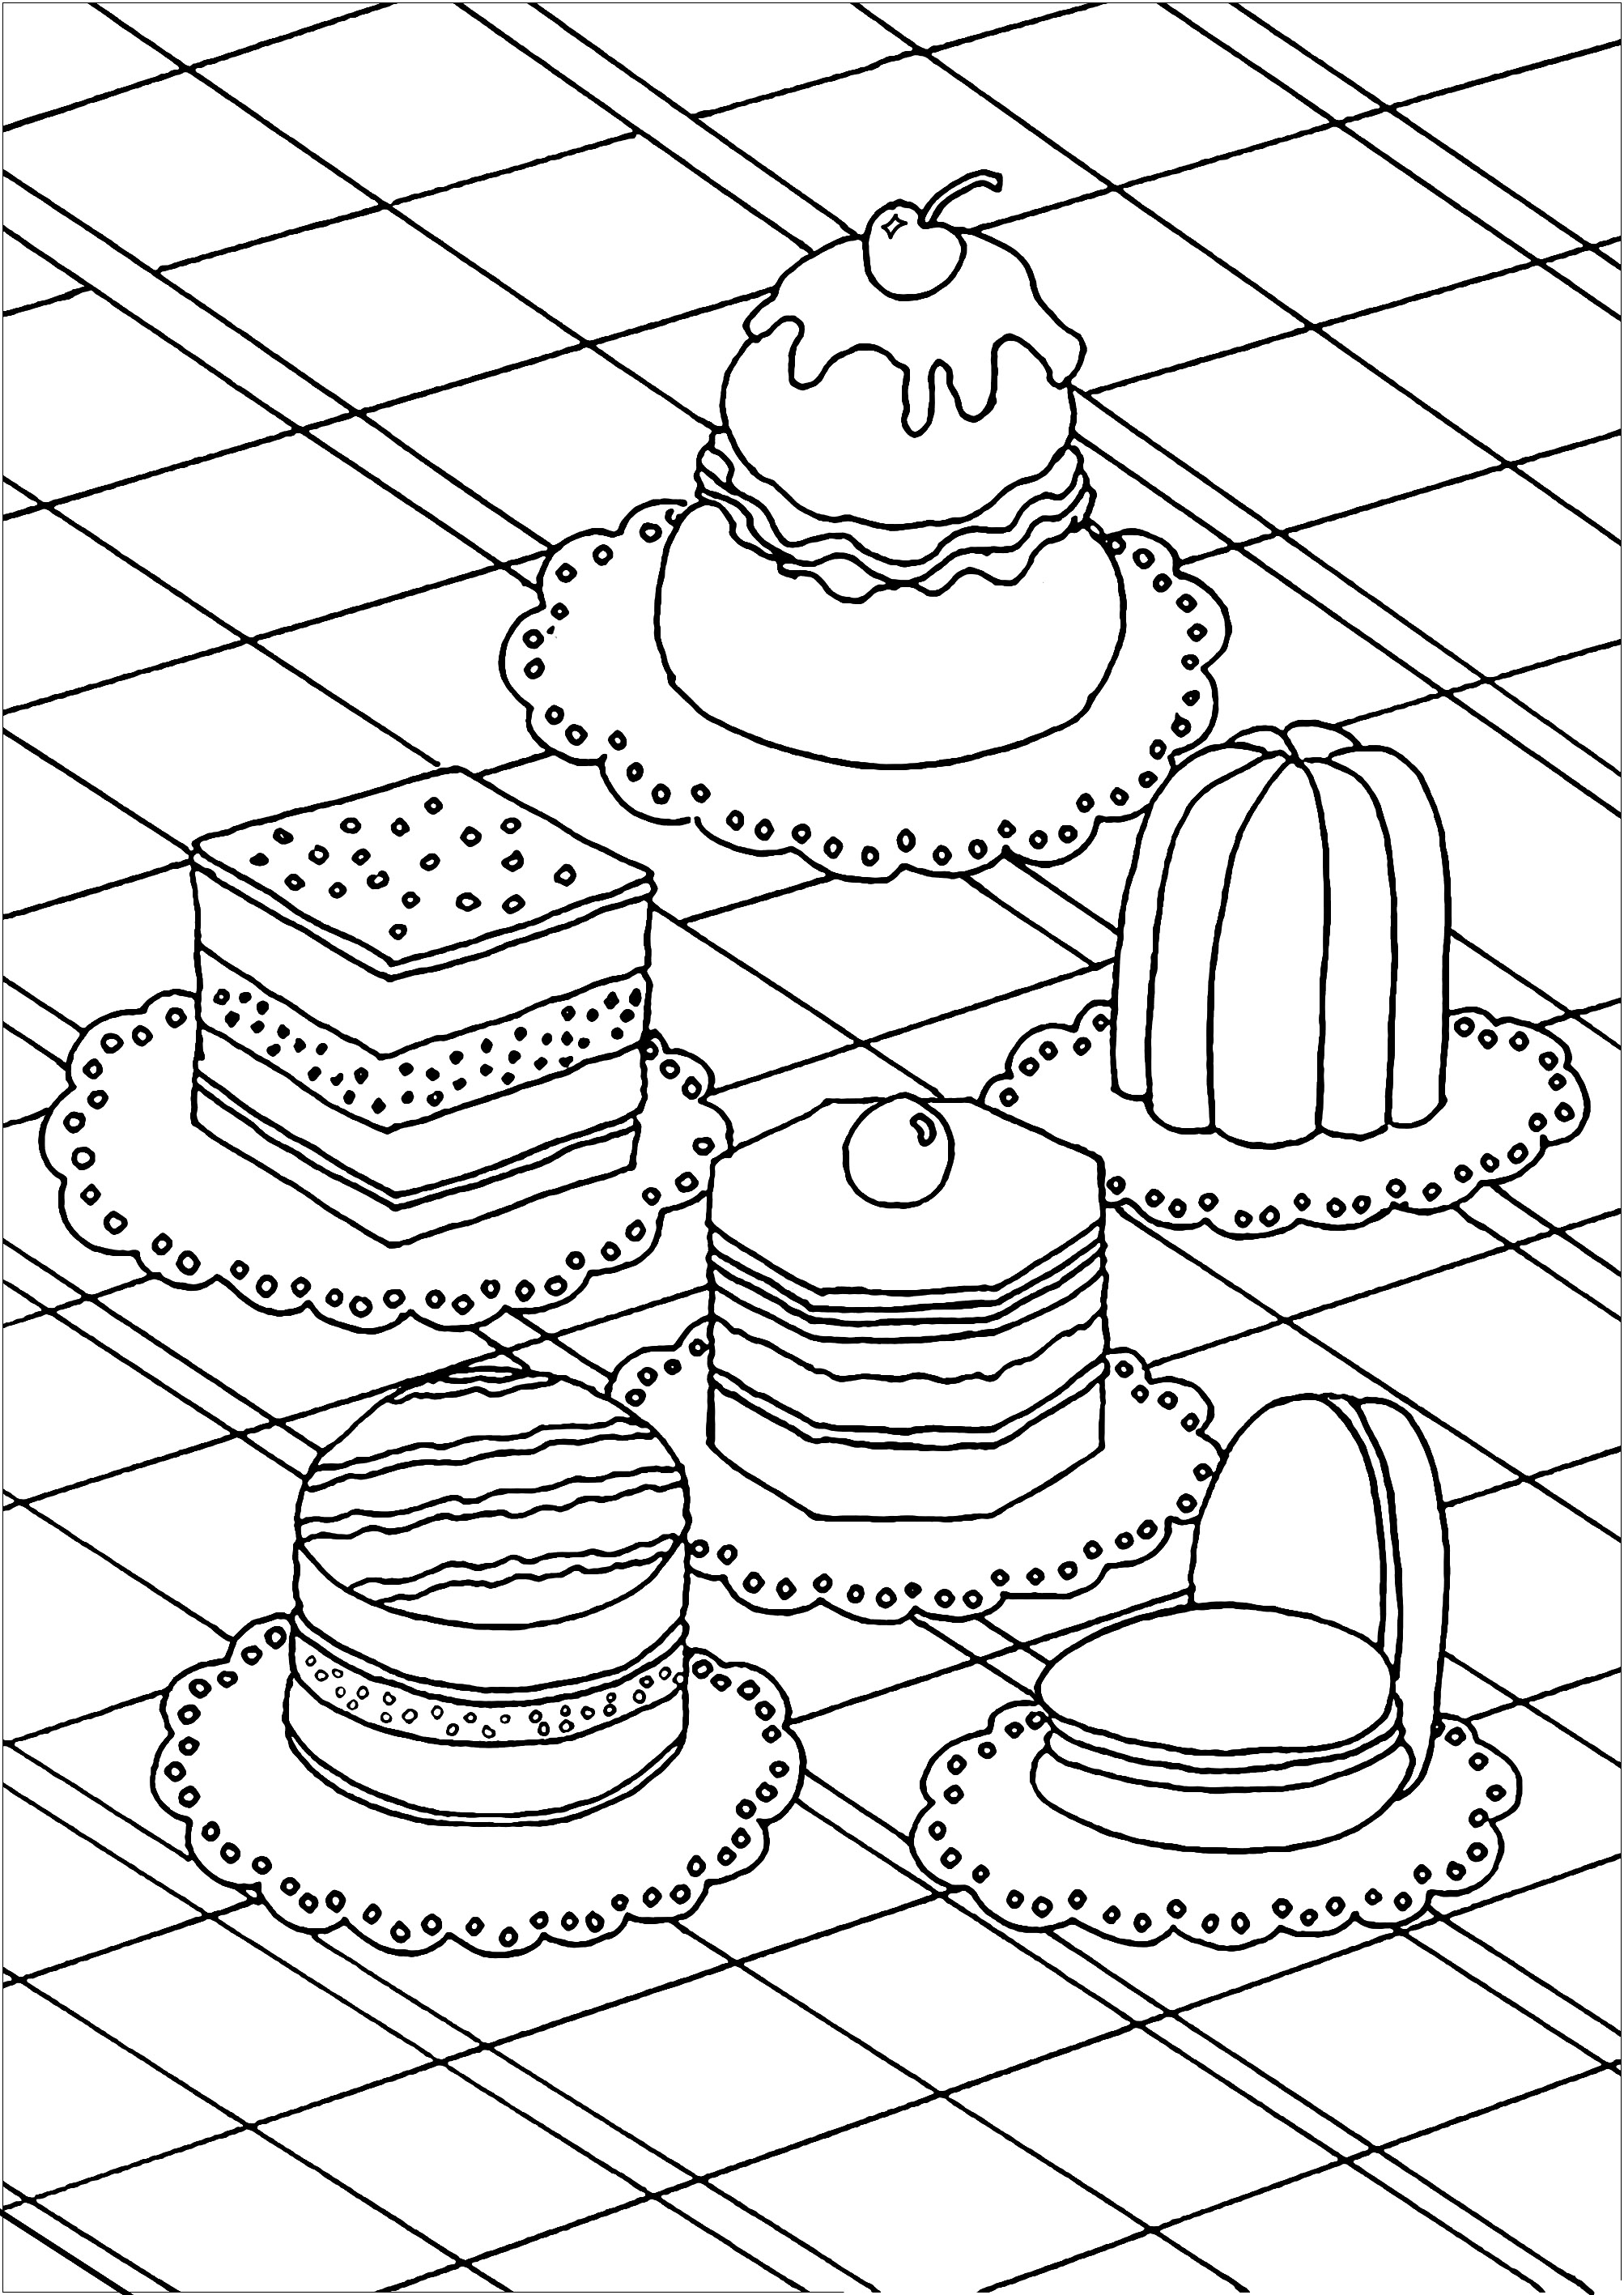 Treat yourself by coloring these various pastries